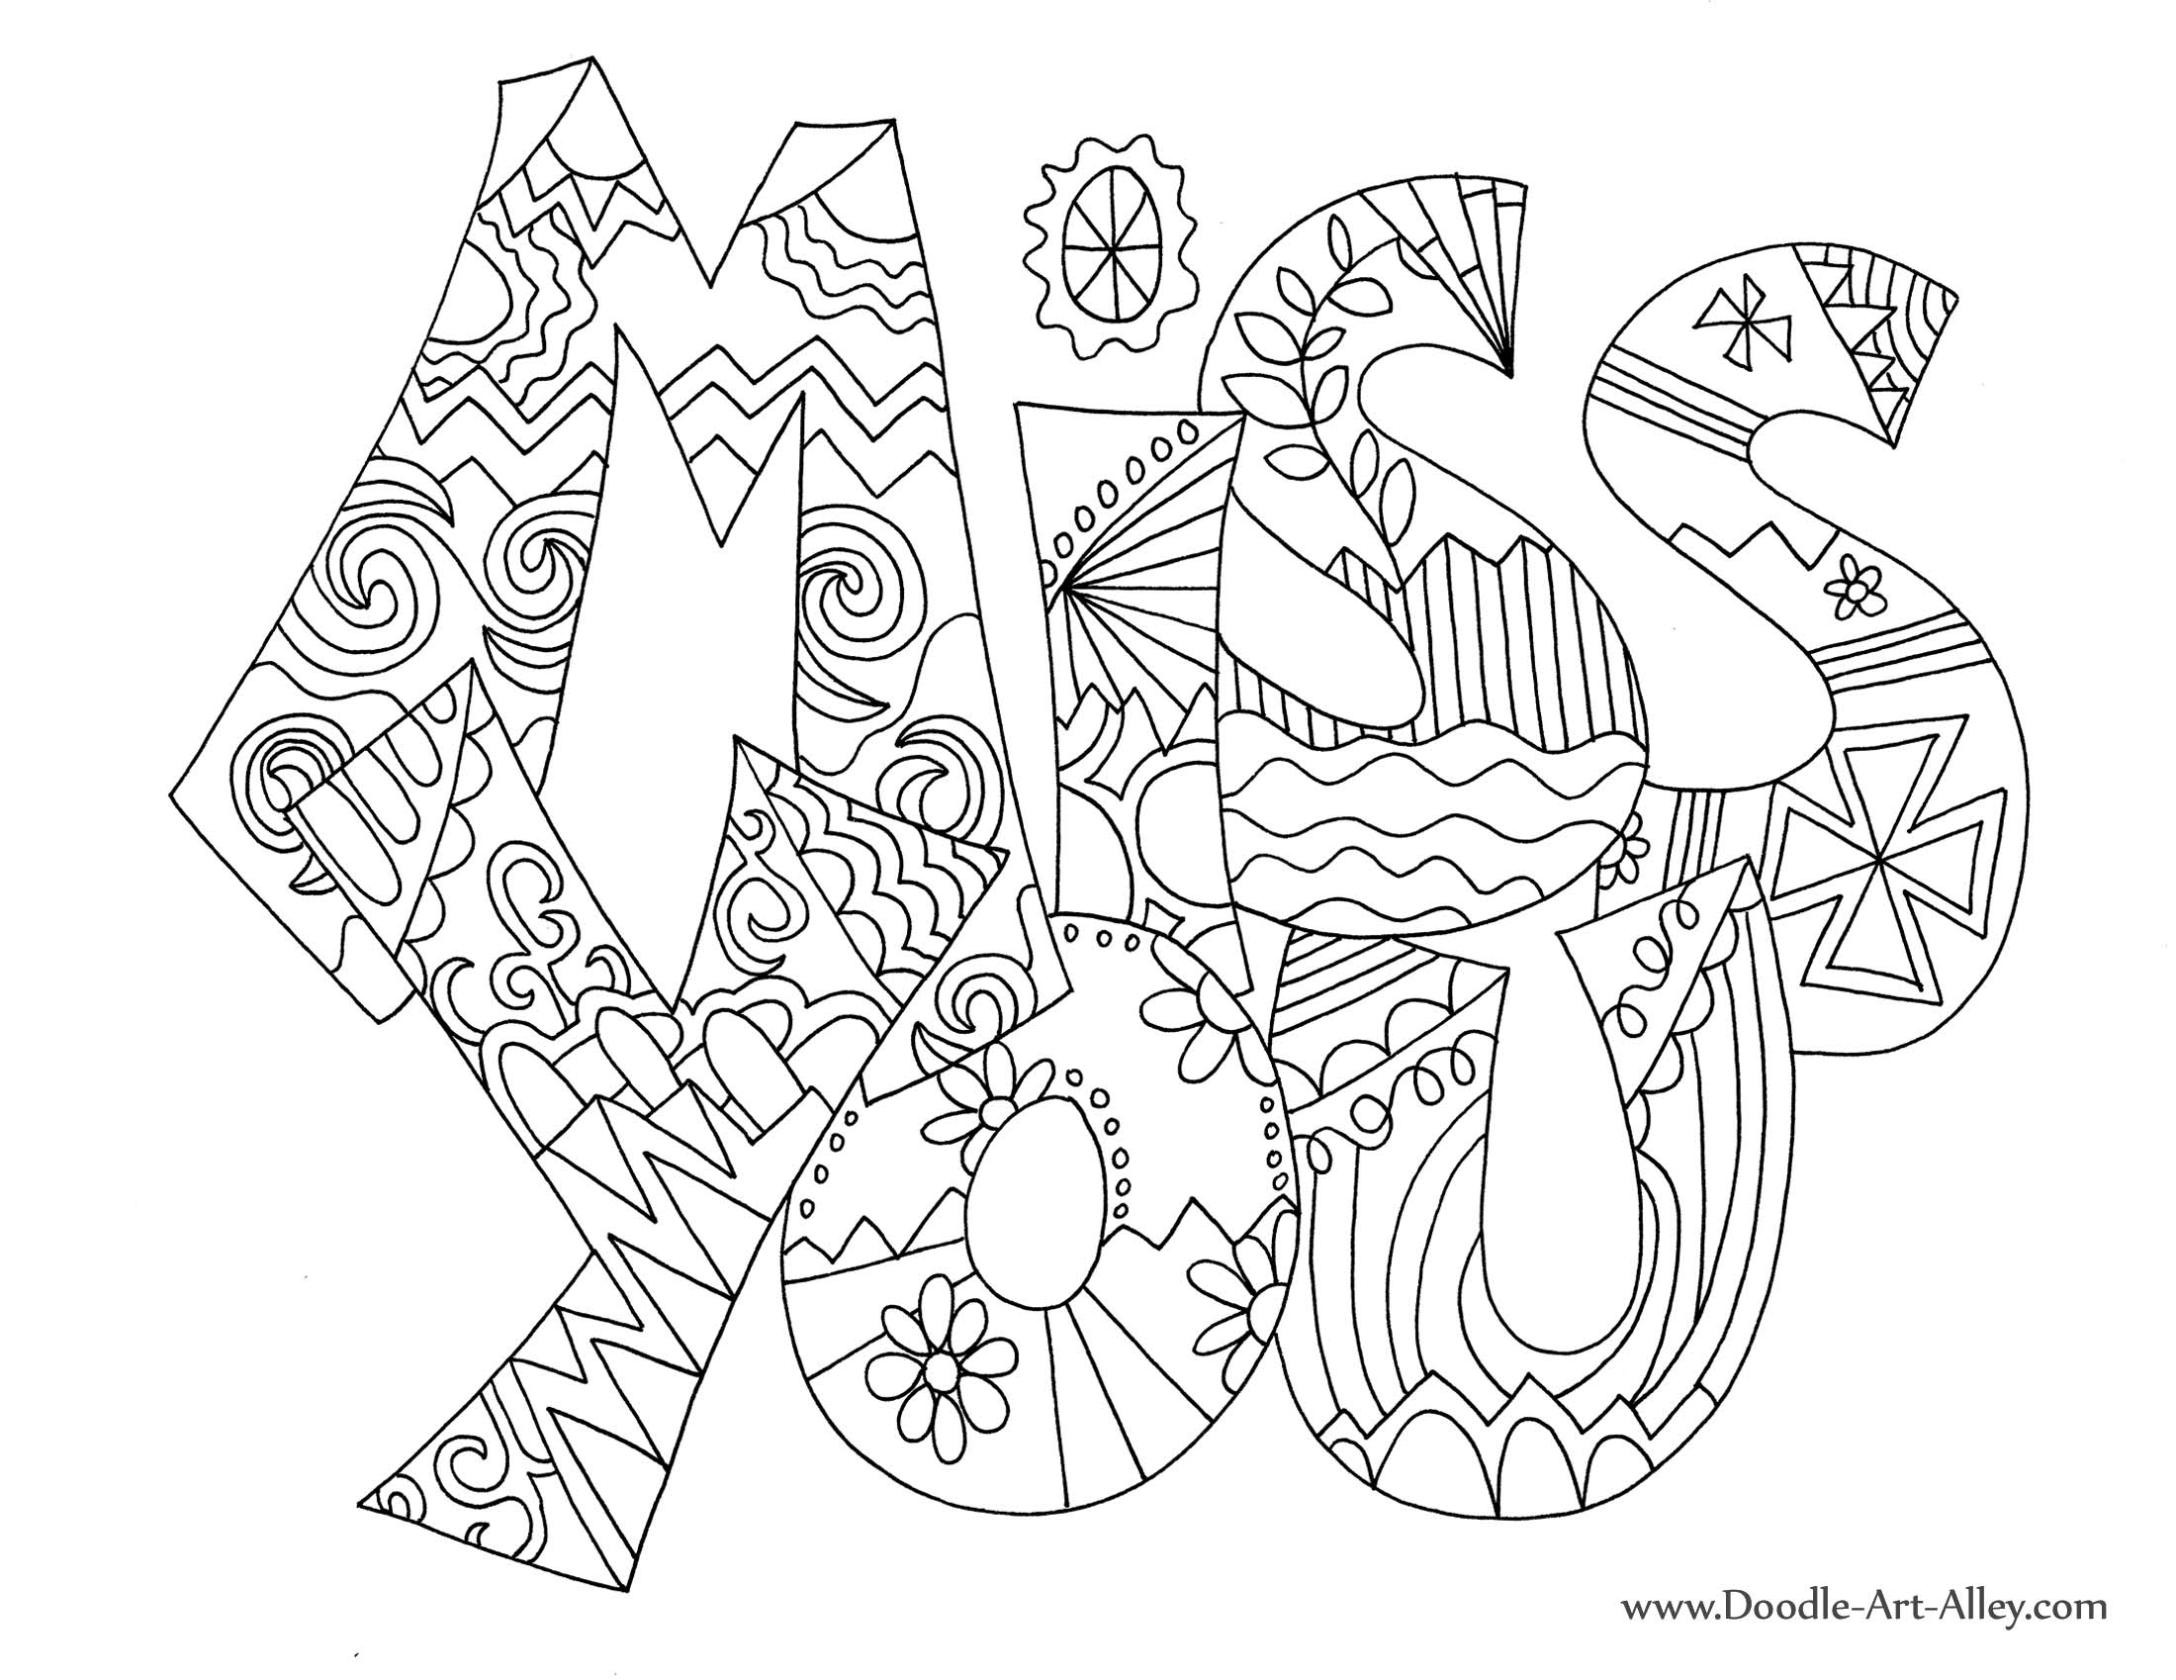 2176x1680 I Miss You Coloring Pages To Print Copy Miss You Doodle Art